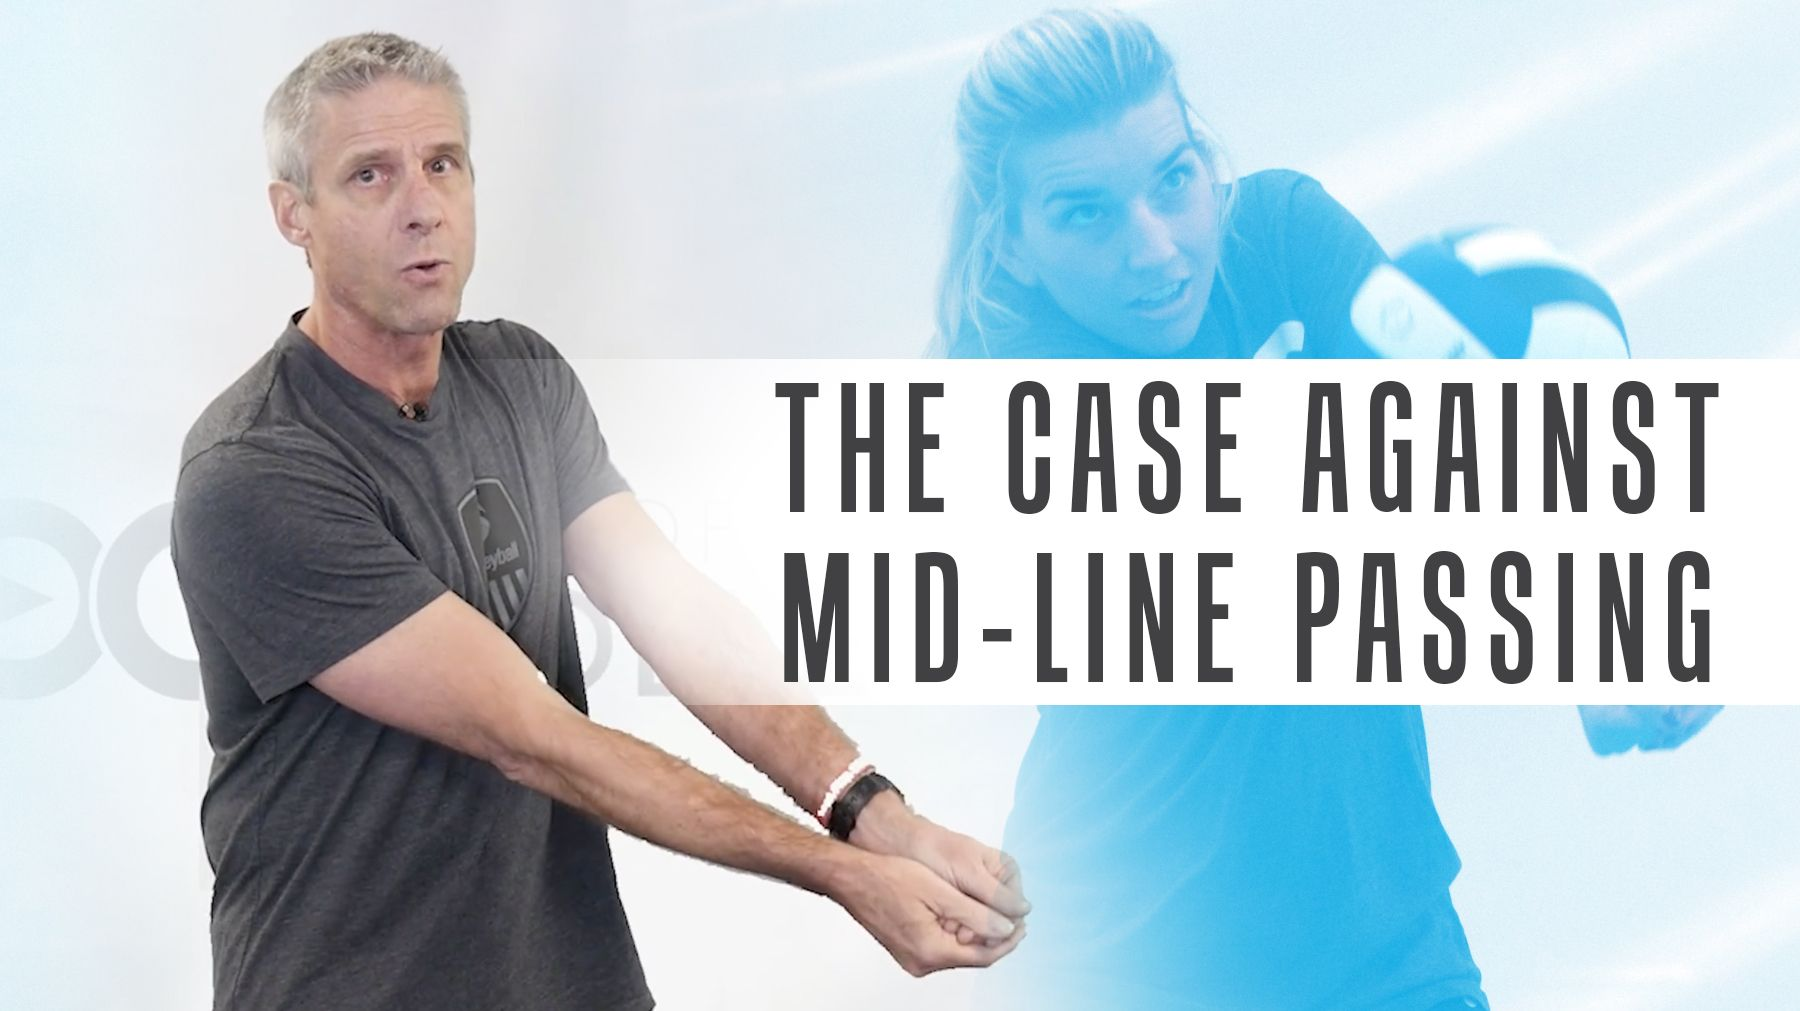 Karch Kiraly S 2 Minute Take The Case Against Mid Line Passing The Art Of Coaching Volleyball Coaching Volleyball Volleyball Coaching